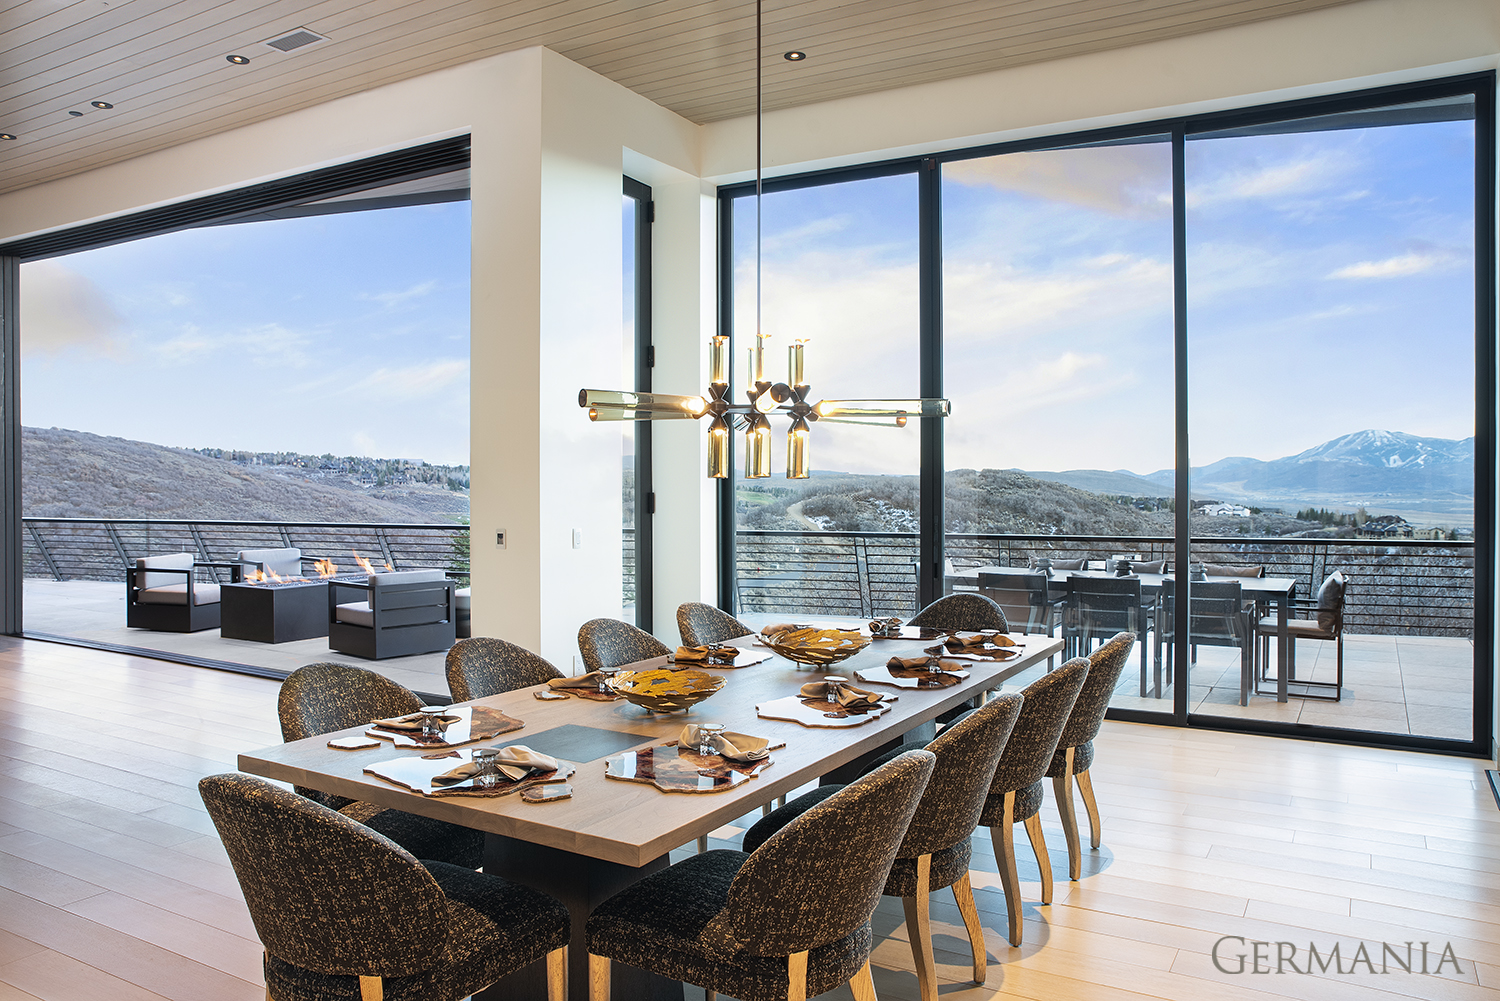 When it comes time to build your new custom home in Park City, you'll want Germania, a residential construction services team, on your side